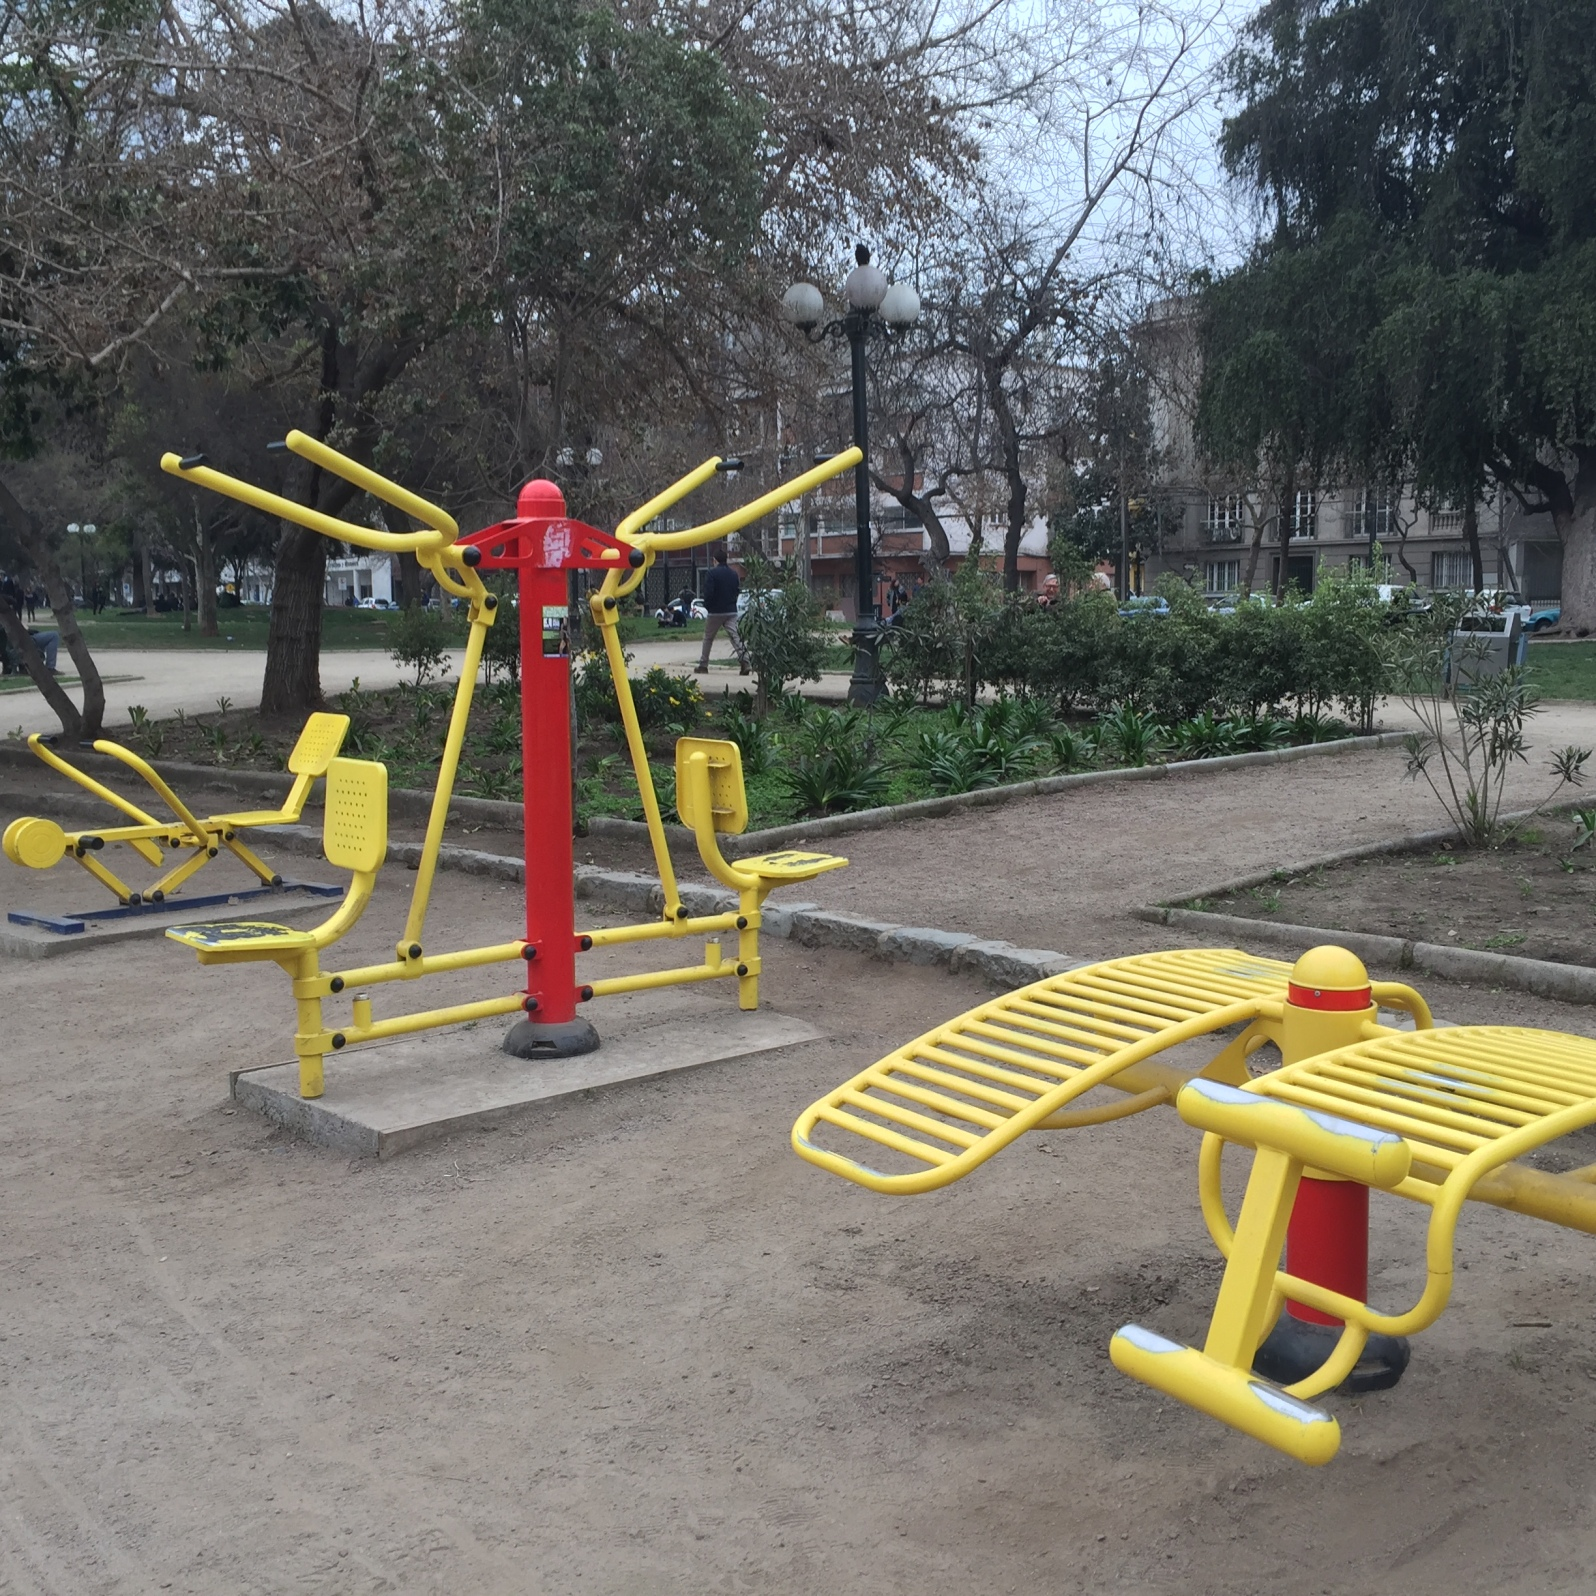 (From left to right: rowing-like machine, shoulder press, and crunches)